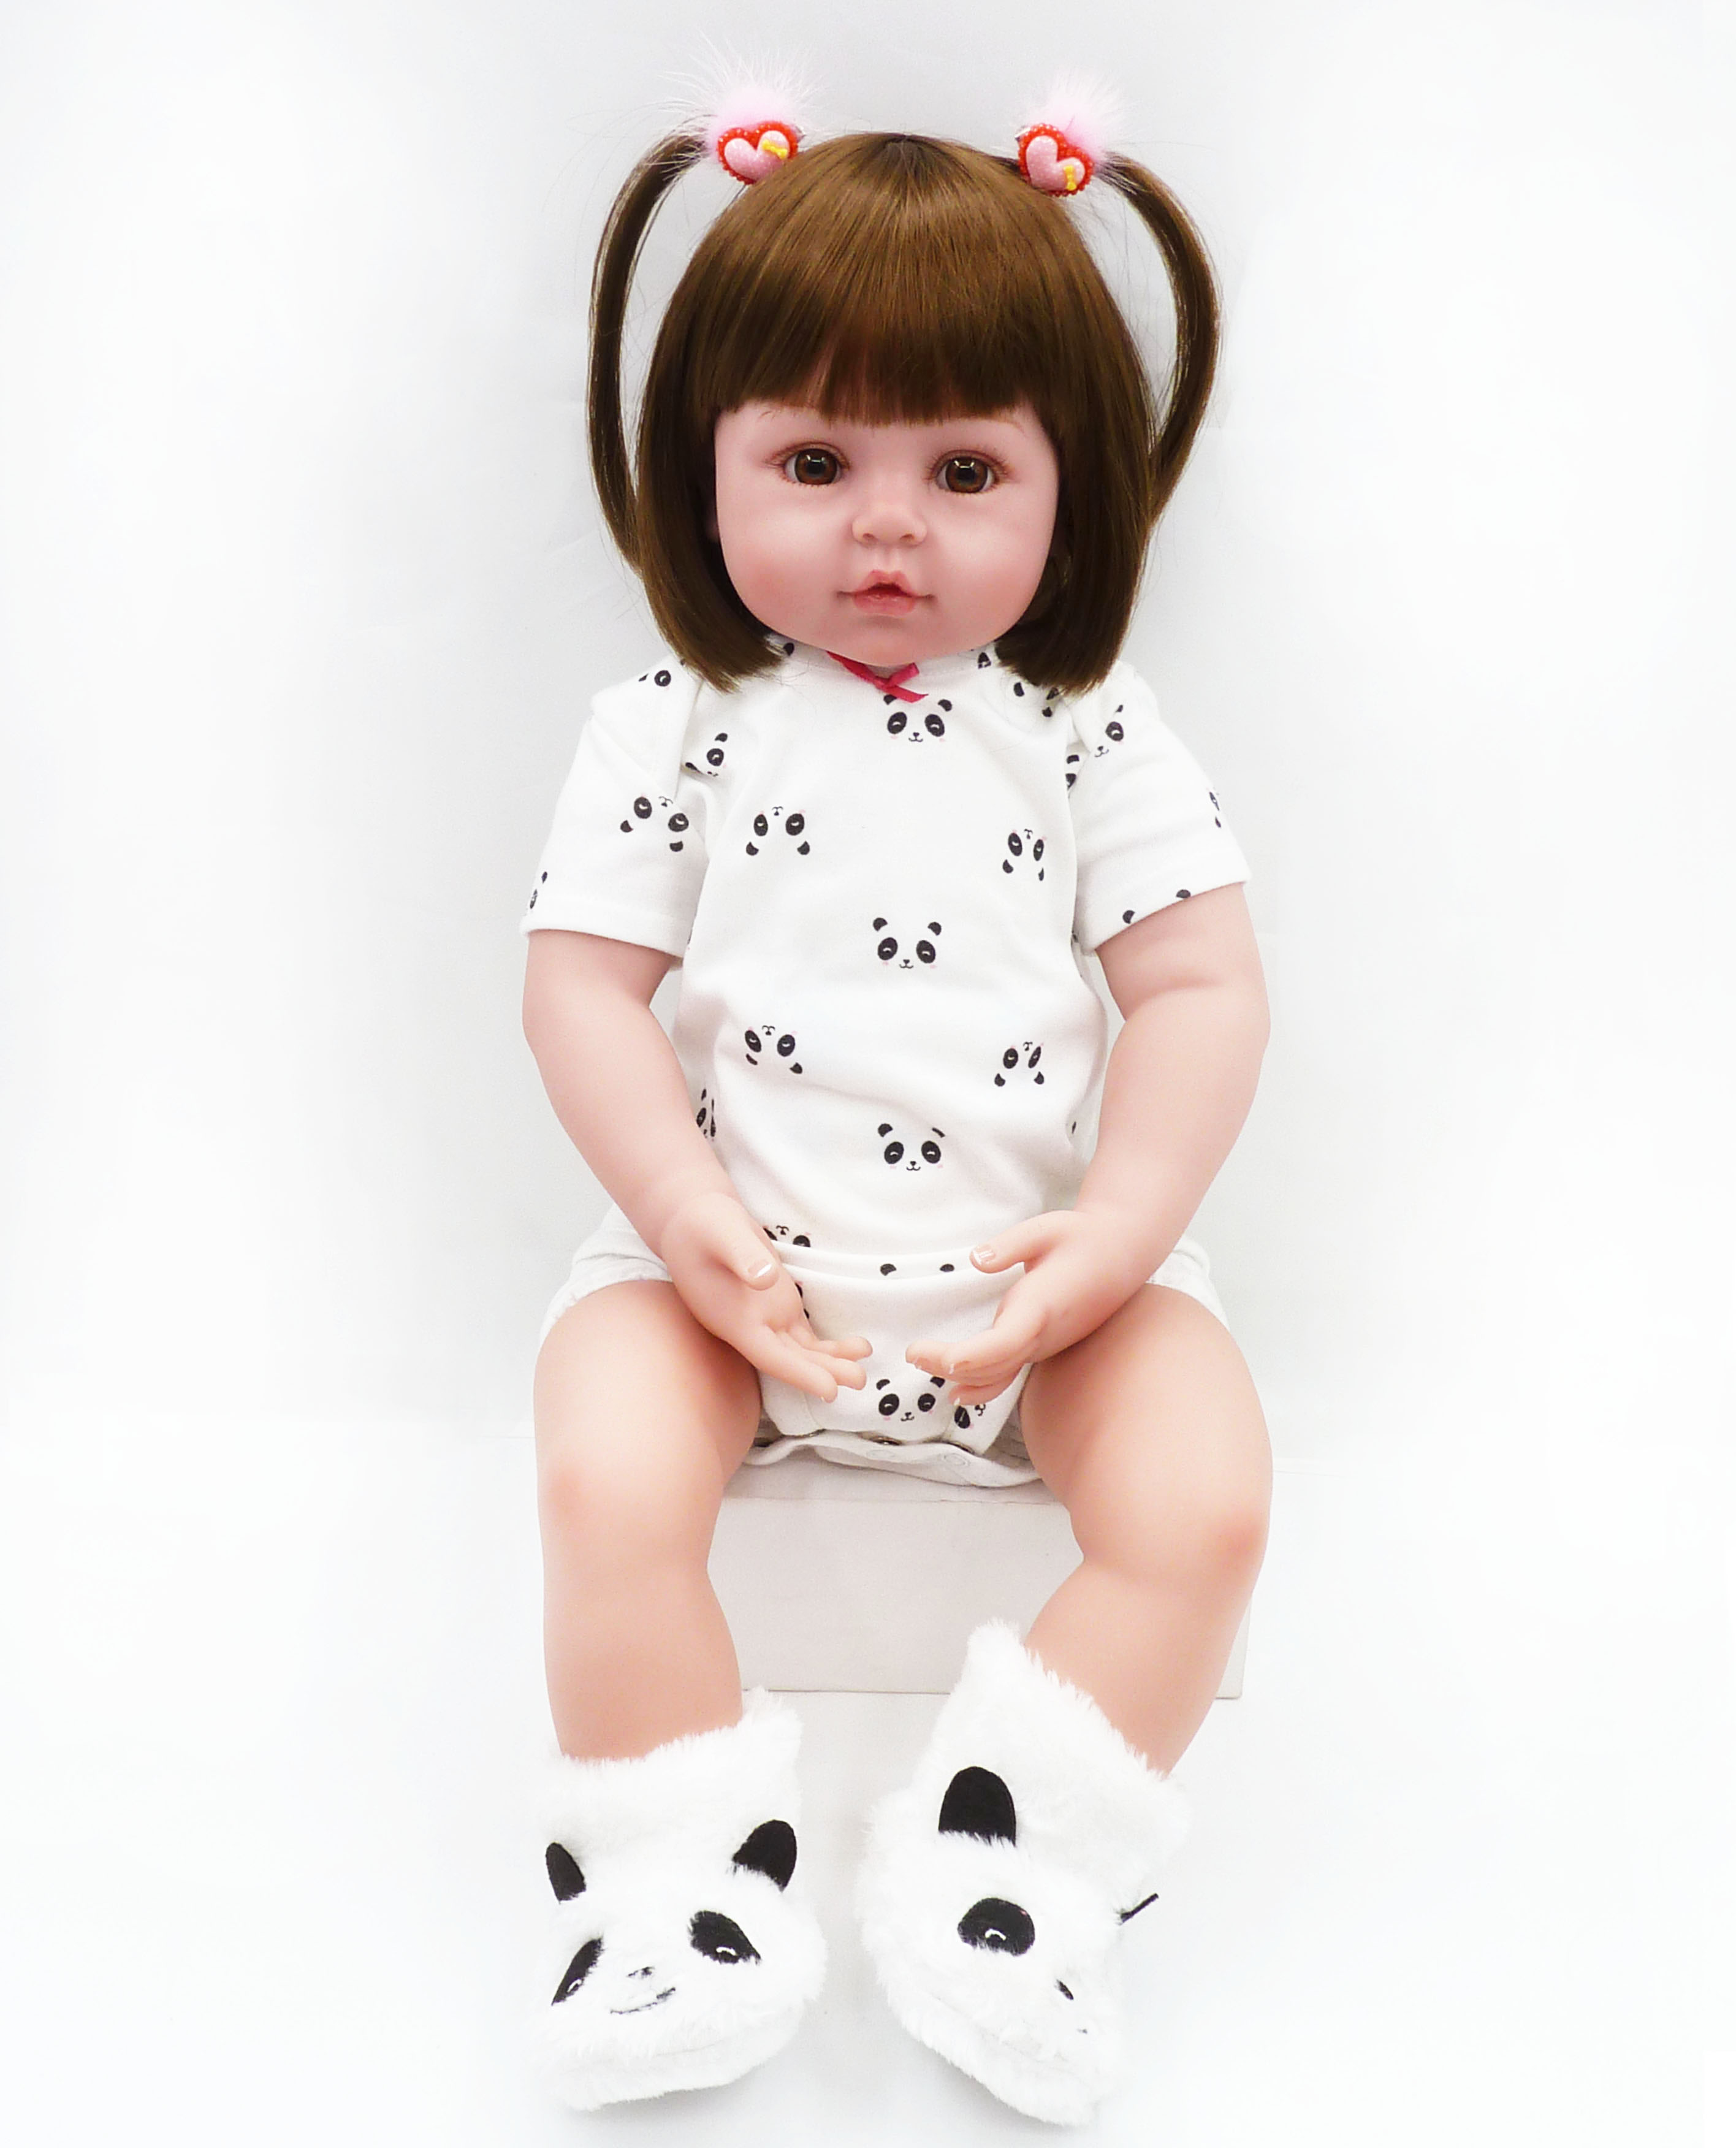 61cm <font><b>24inch</b></font> Soft Cotton Body Silicone Doll Reborn Lifelike Baby Girl Doll Reborn Baby Real Doll Kids Birthday Christmas Gifts image